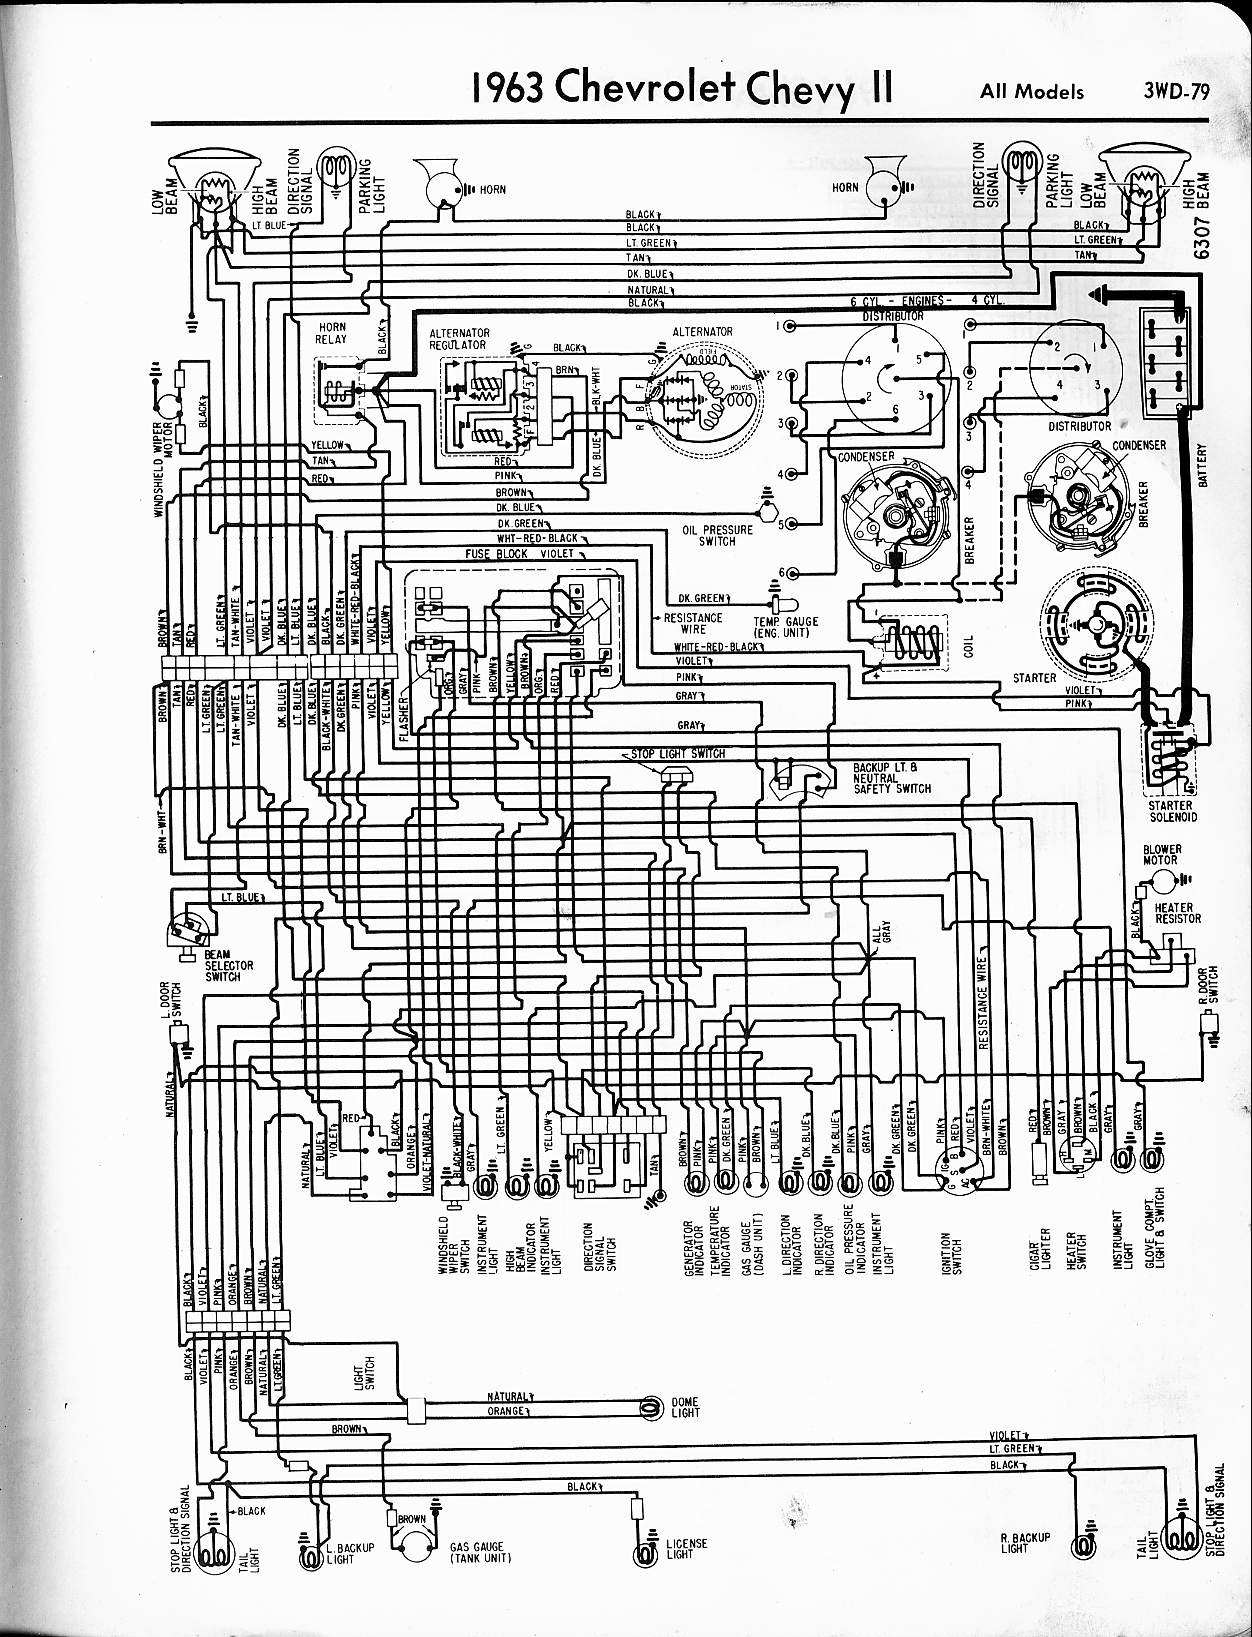 MWireChev63_3WD 079 1963 c10 pickup wiring diagram pdf chevy wiring diagrams \u2022 free 63 chevy c10 wiring harness at fashall.co